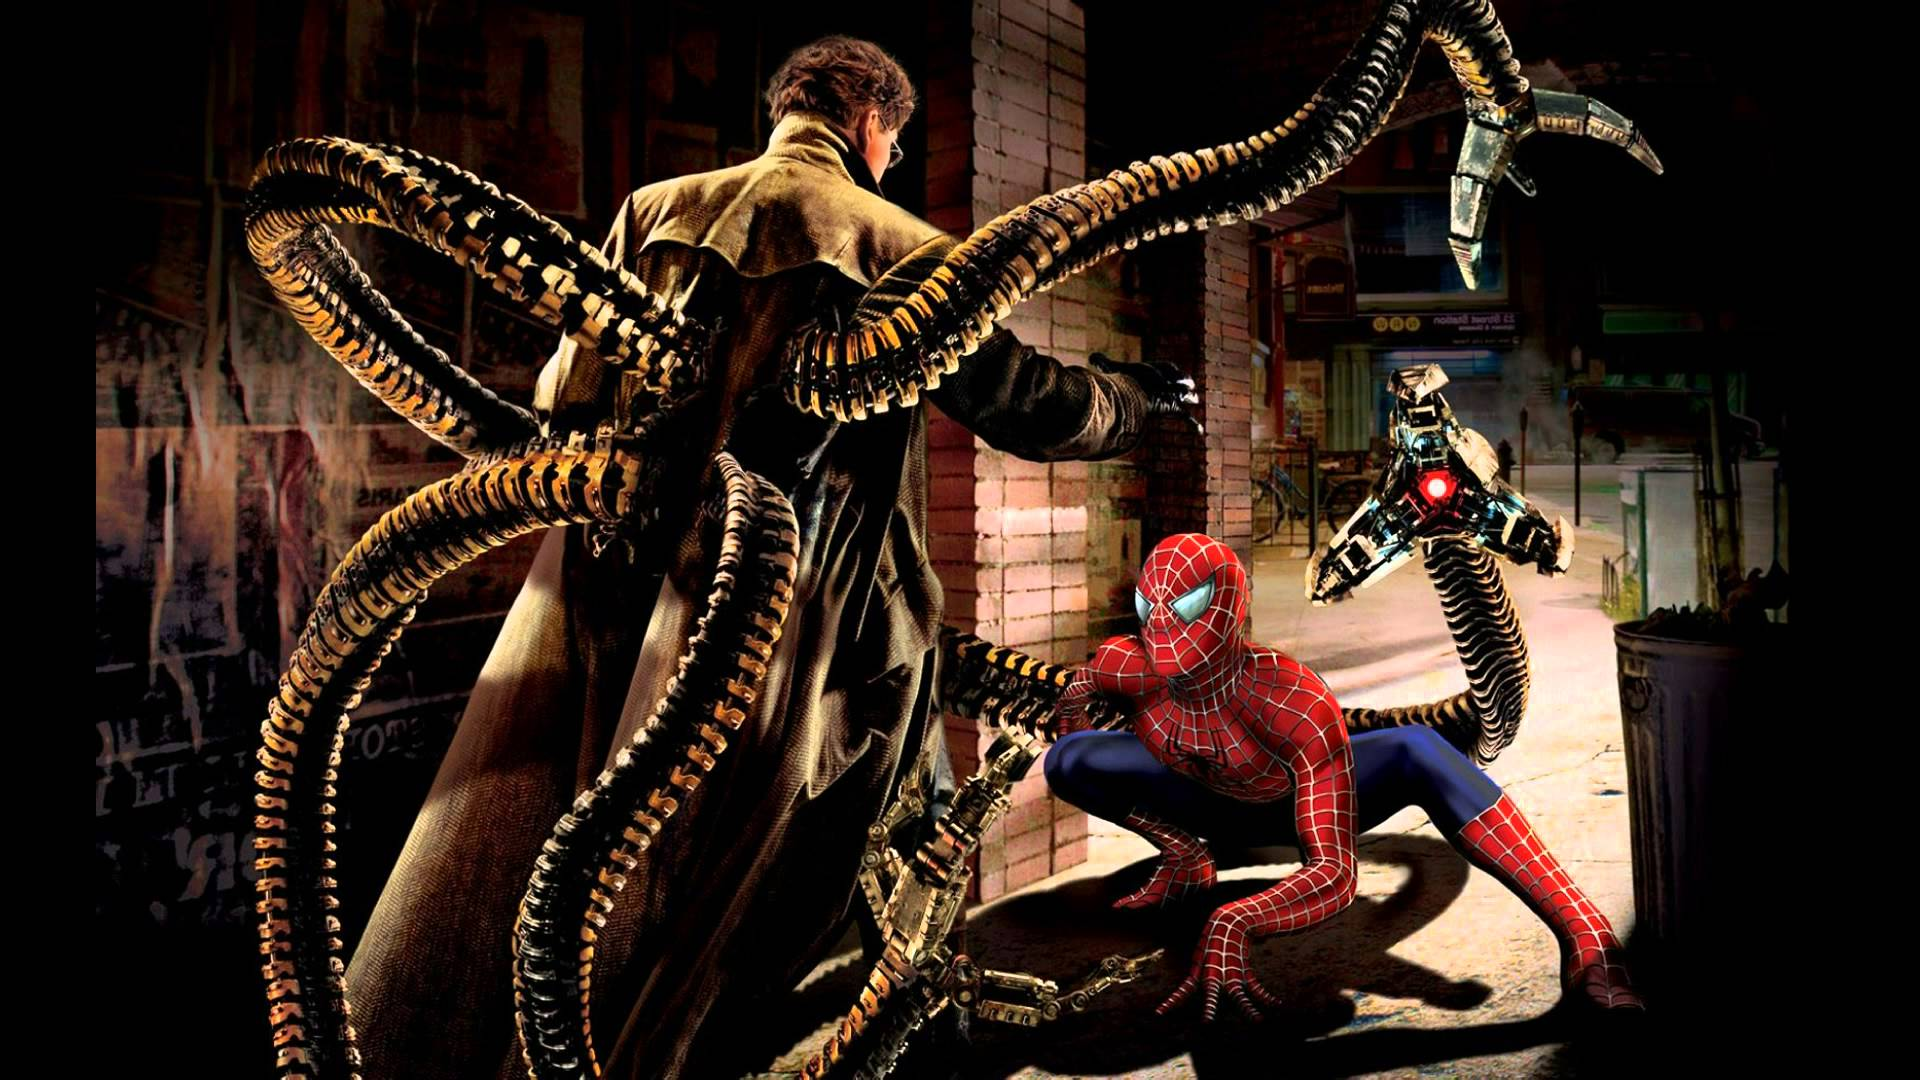 Spider-Man 2 HD Wallpaper | Sfondo | 1920x1080 | ID:315239 - Wallpaper Abyss